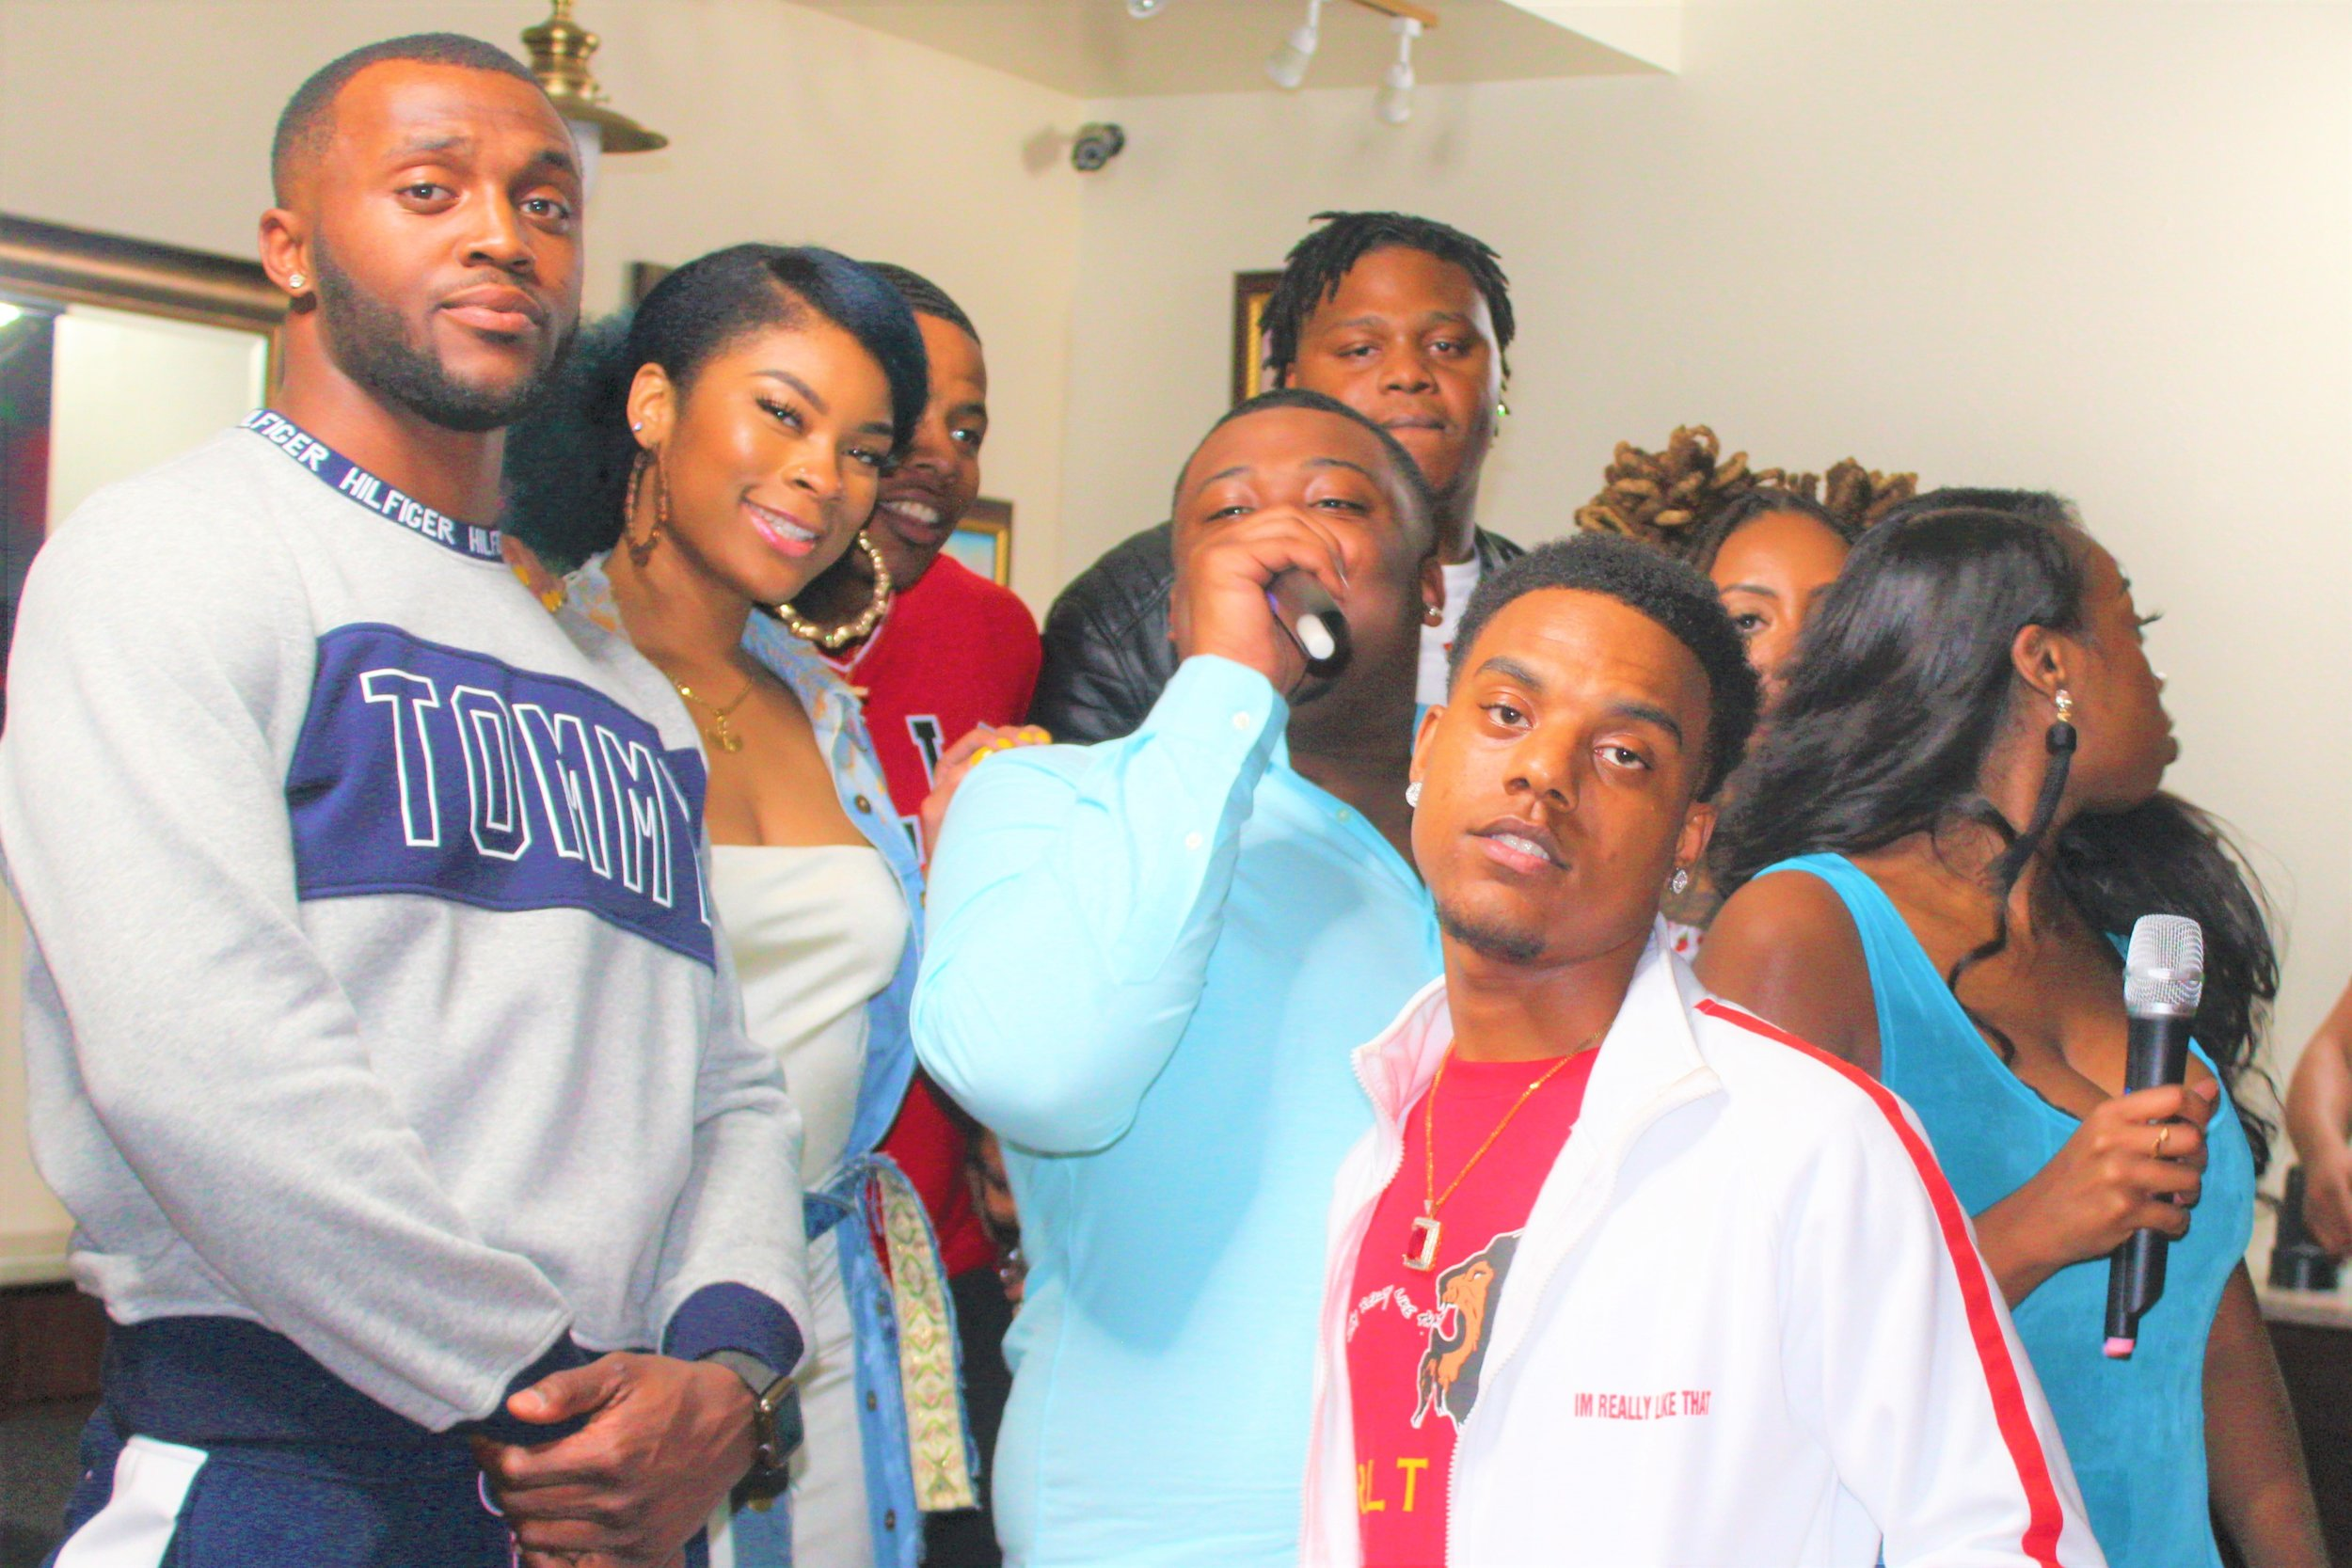 The Cast of Authenticity, From Left to Right: Storey, Quita, Willie, Shon, Key and Lonette pose for a photo op with some of their guests from the live show.  Photo Credit:  Danielle Brown